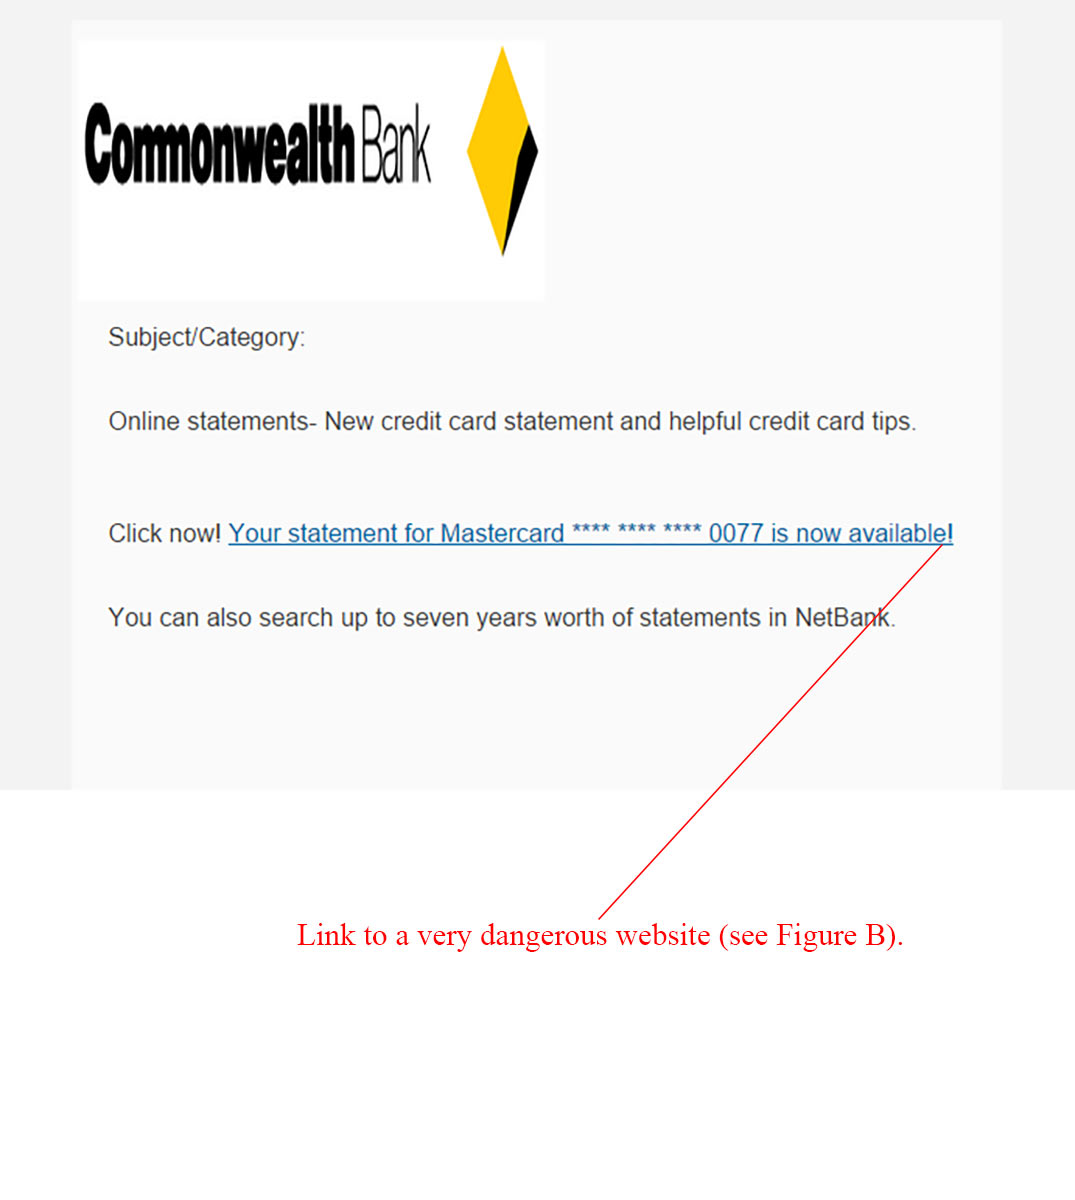 Commonwealth Bank Credit Card Statement Email Scam